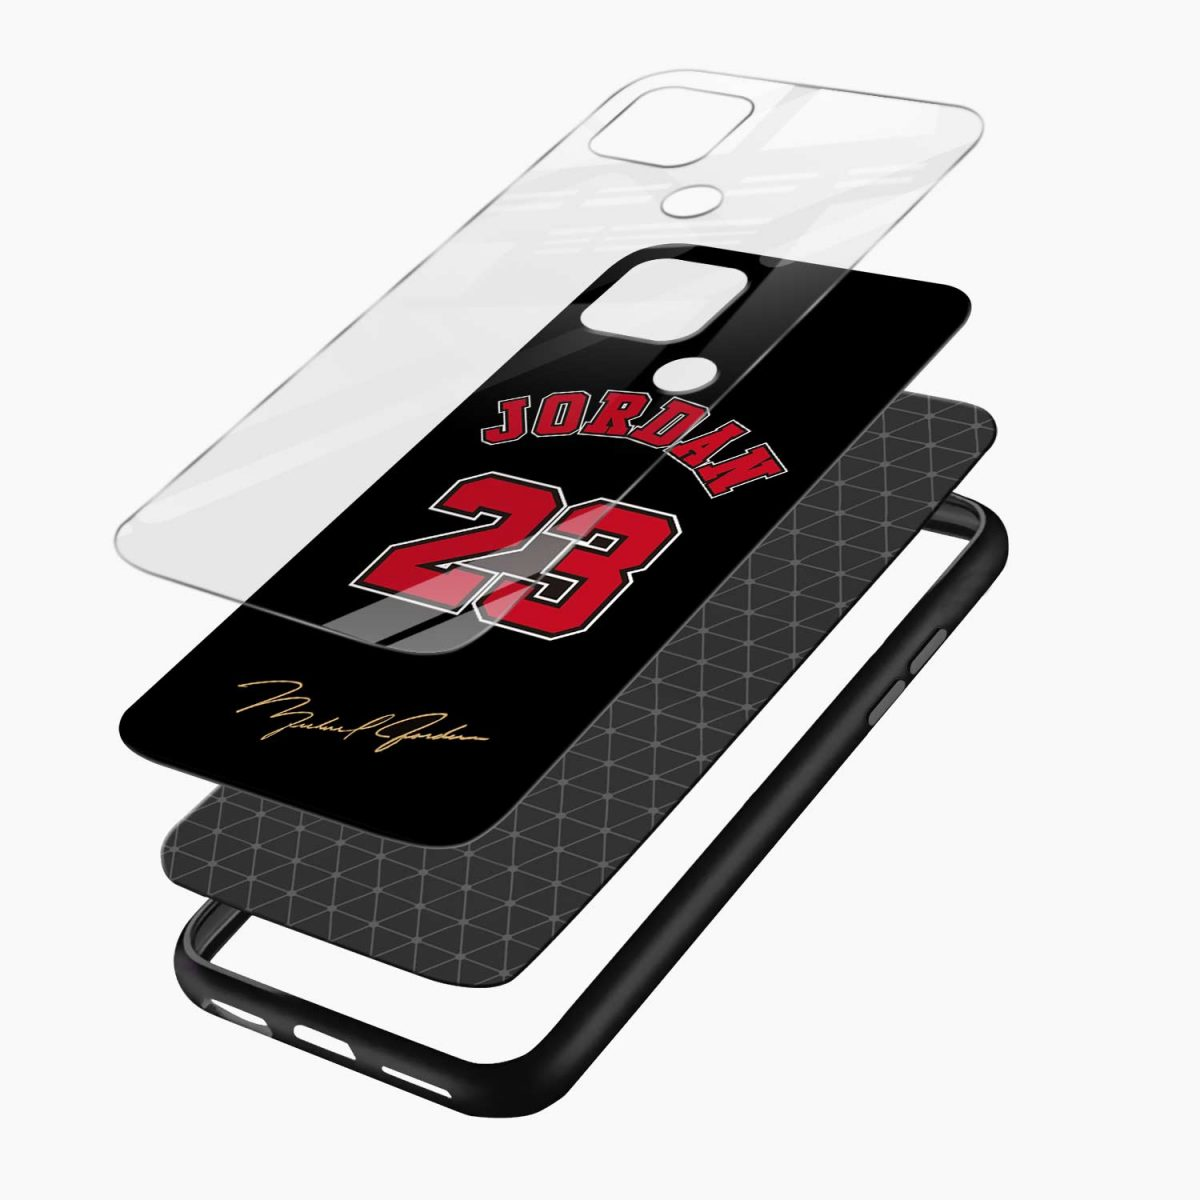 jordan 23 layers view oppo a15 back cover